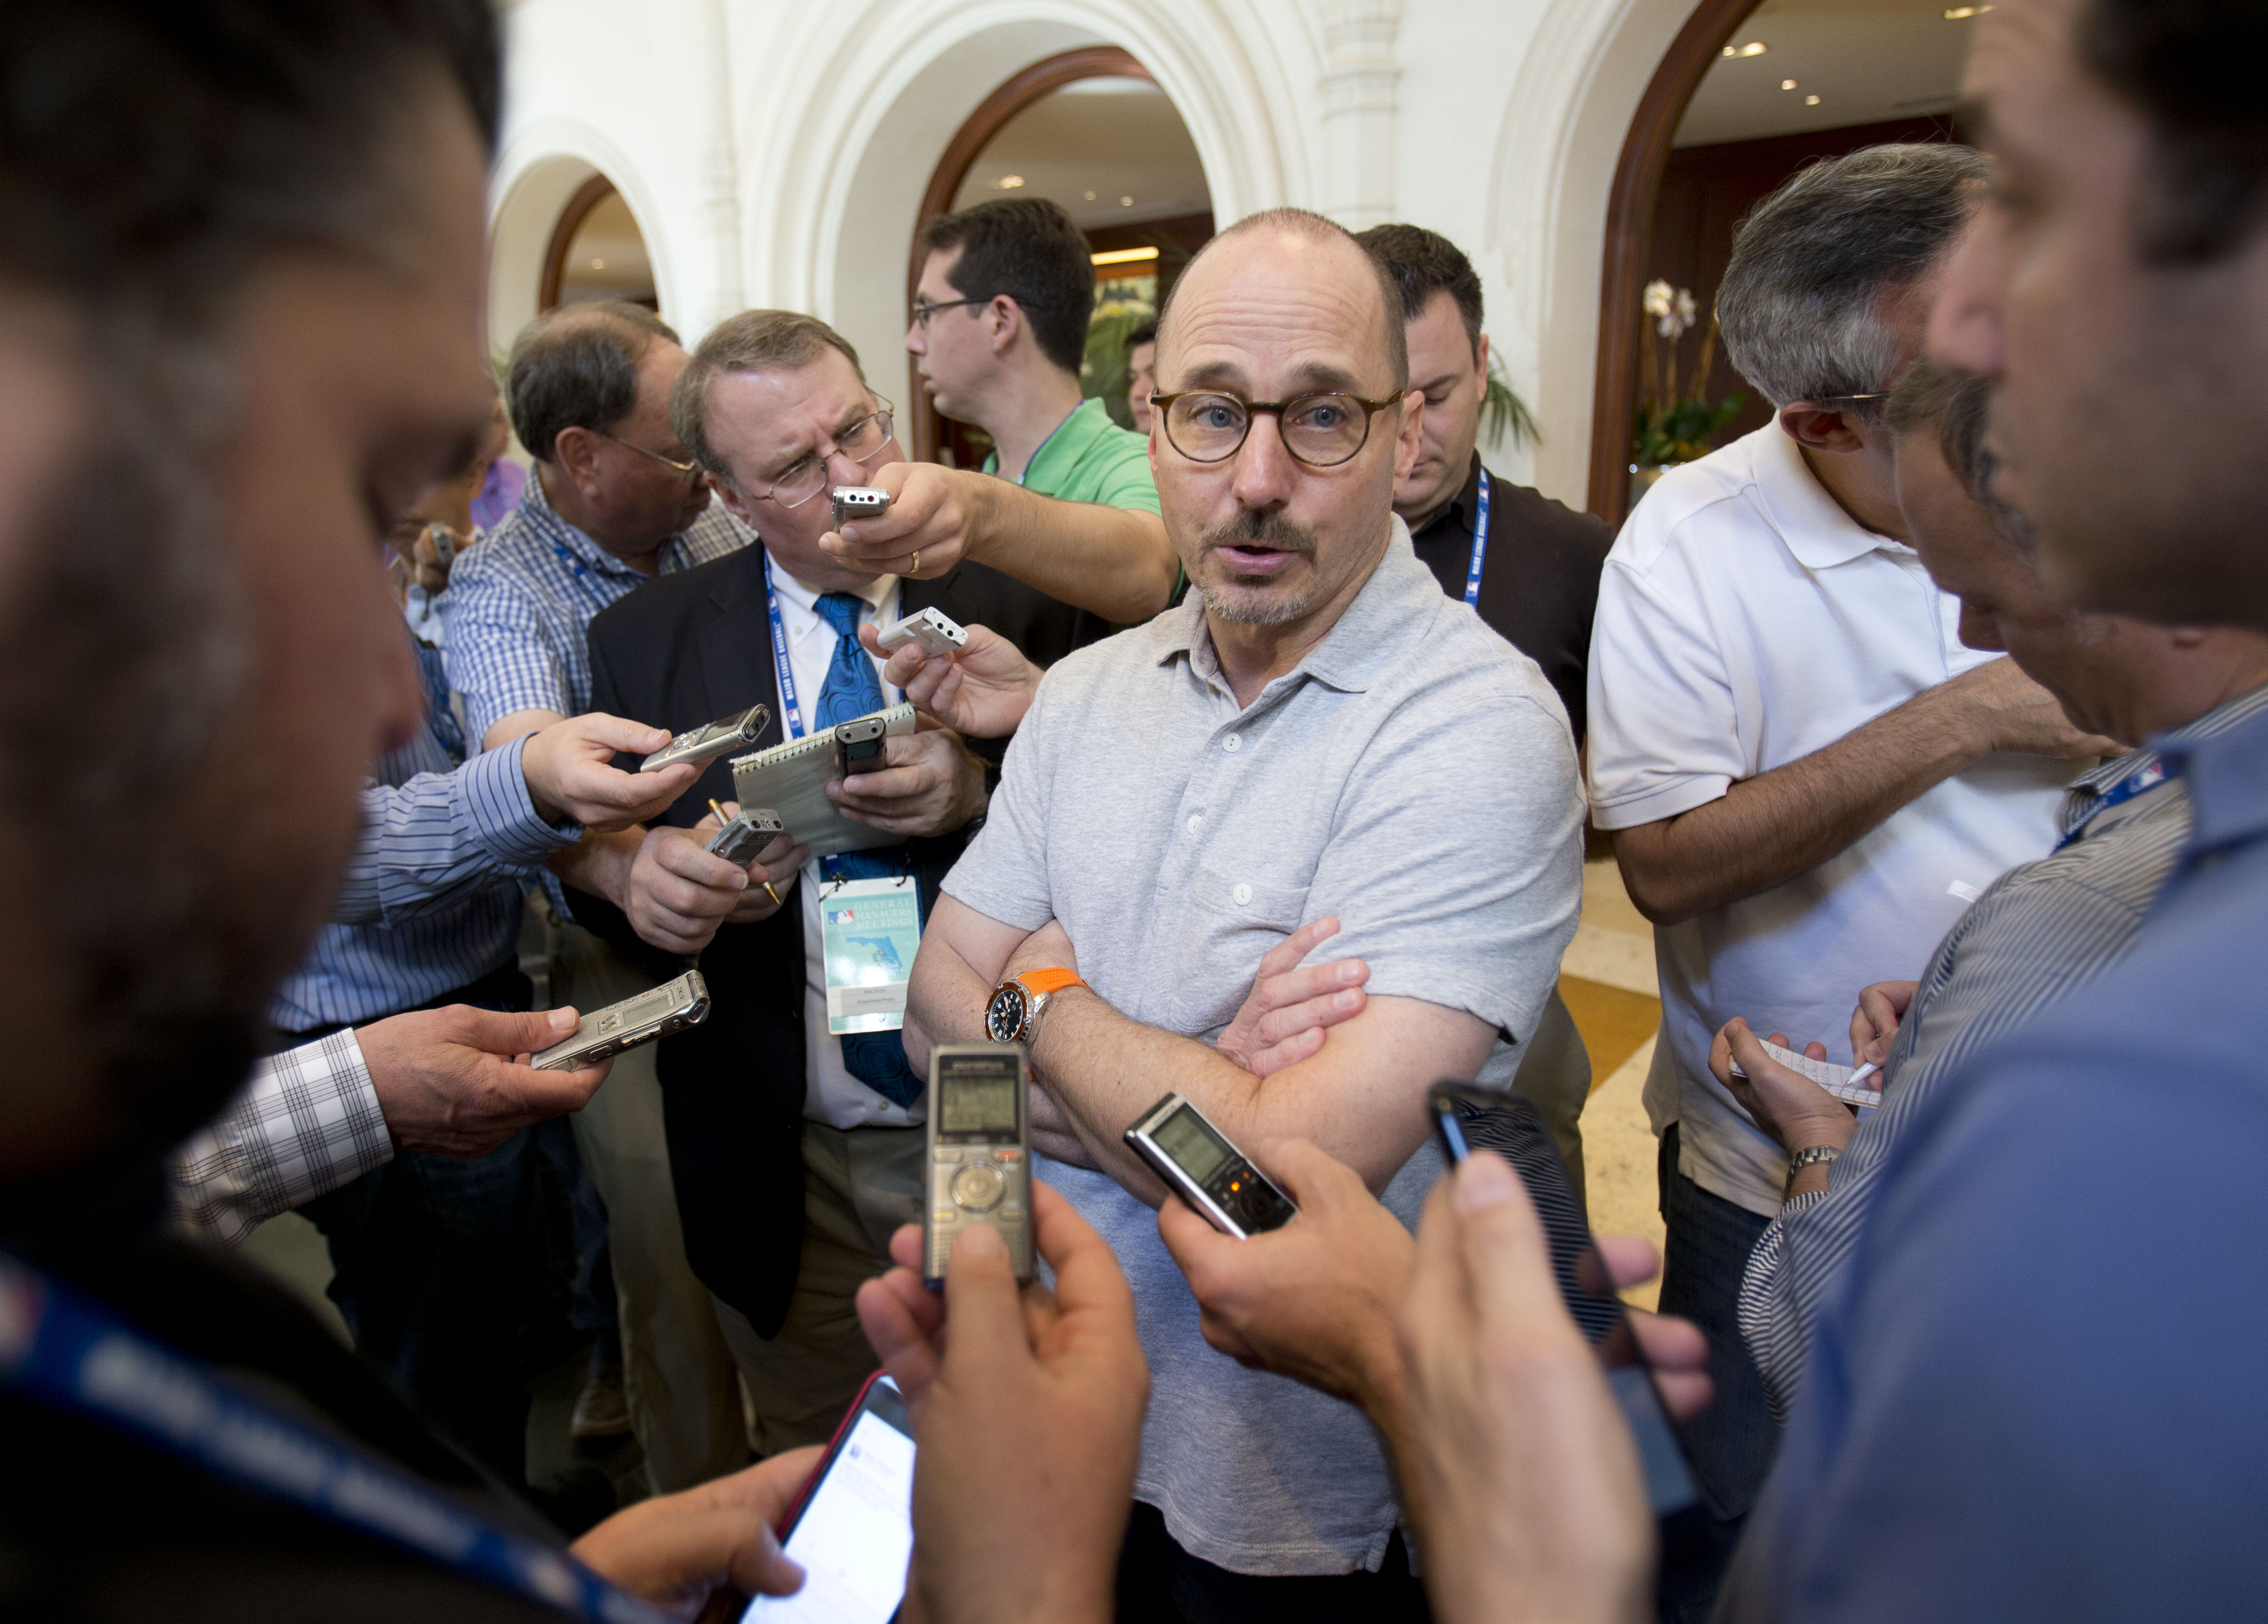 New York Yankees general manager Brian Cashman, center, speaks to member of the media as he attends the baseball general managers' meetings, Wednesday, Nov. 11, 2015, in Boca Raton, Fla. The Yankees have traded infielder Jose Pirela to the San Diego Padre